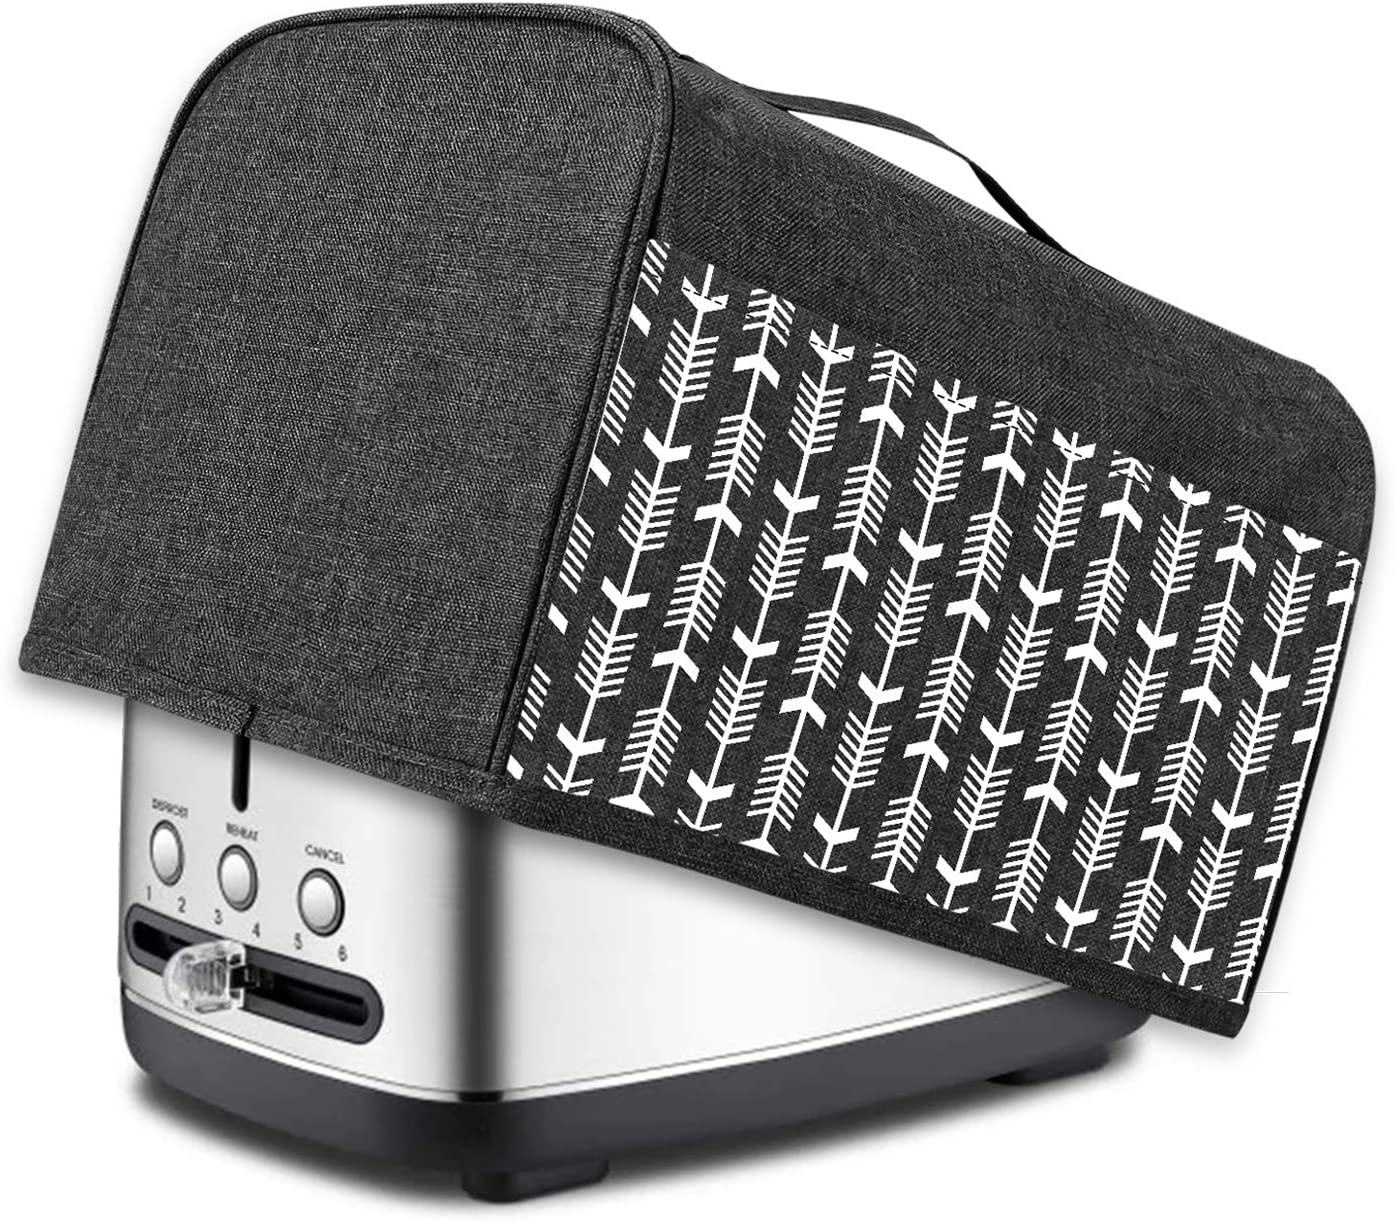 Yarwo 2 Slice Toaster Cover with Pockets and Top Handle, Nylon Toaster Cover Fits for Most Standard 2 slice Toasters, Black with Arrow